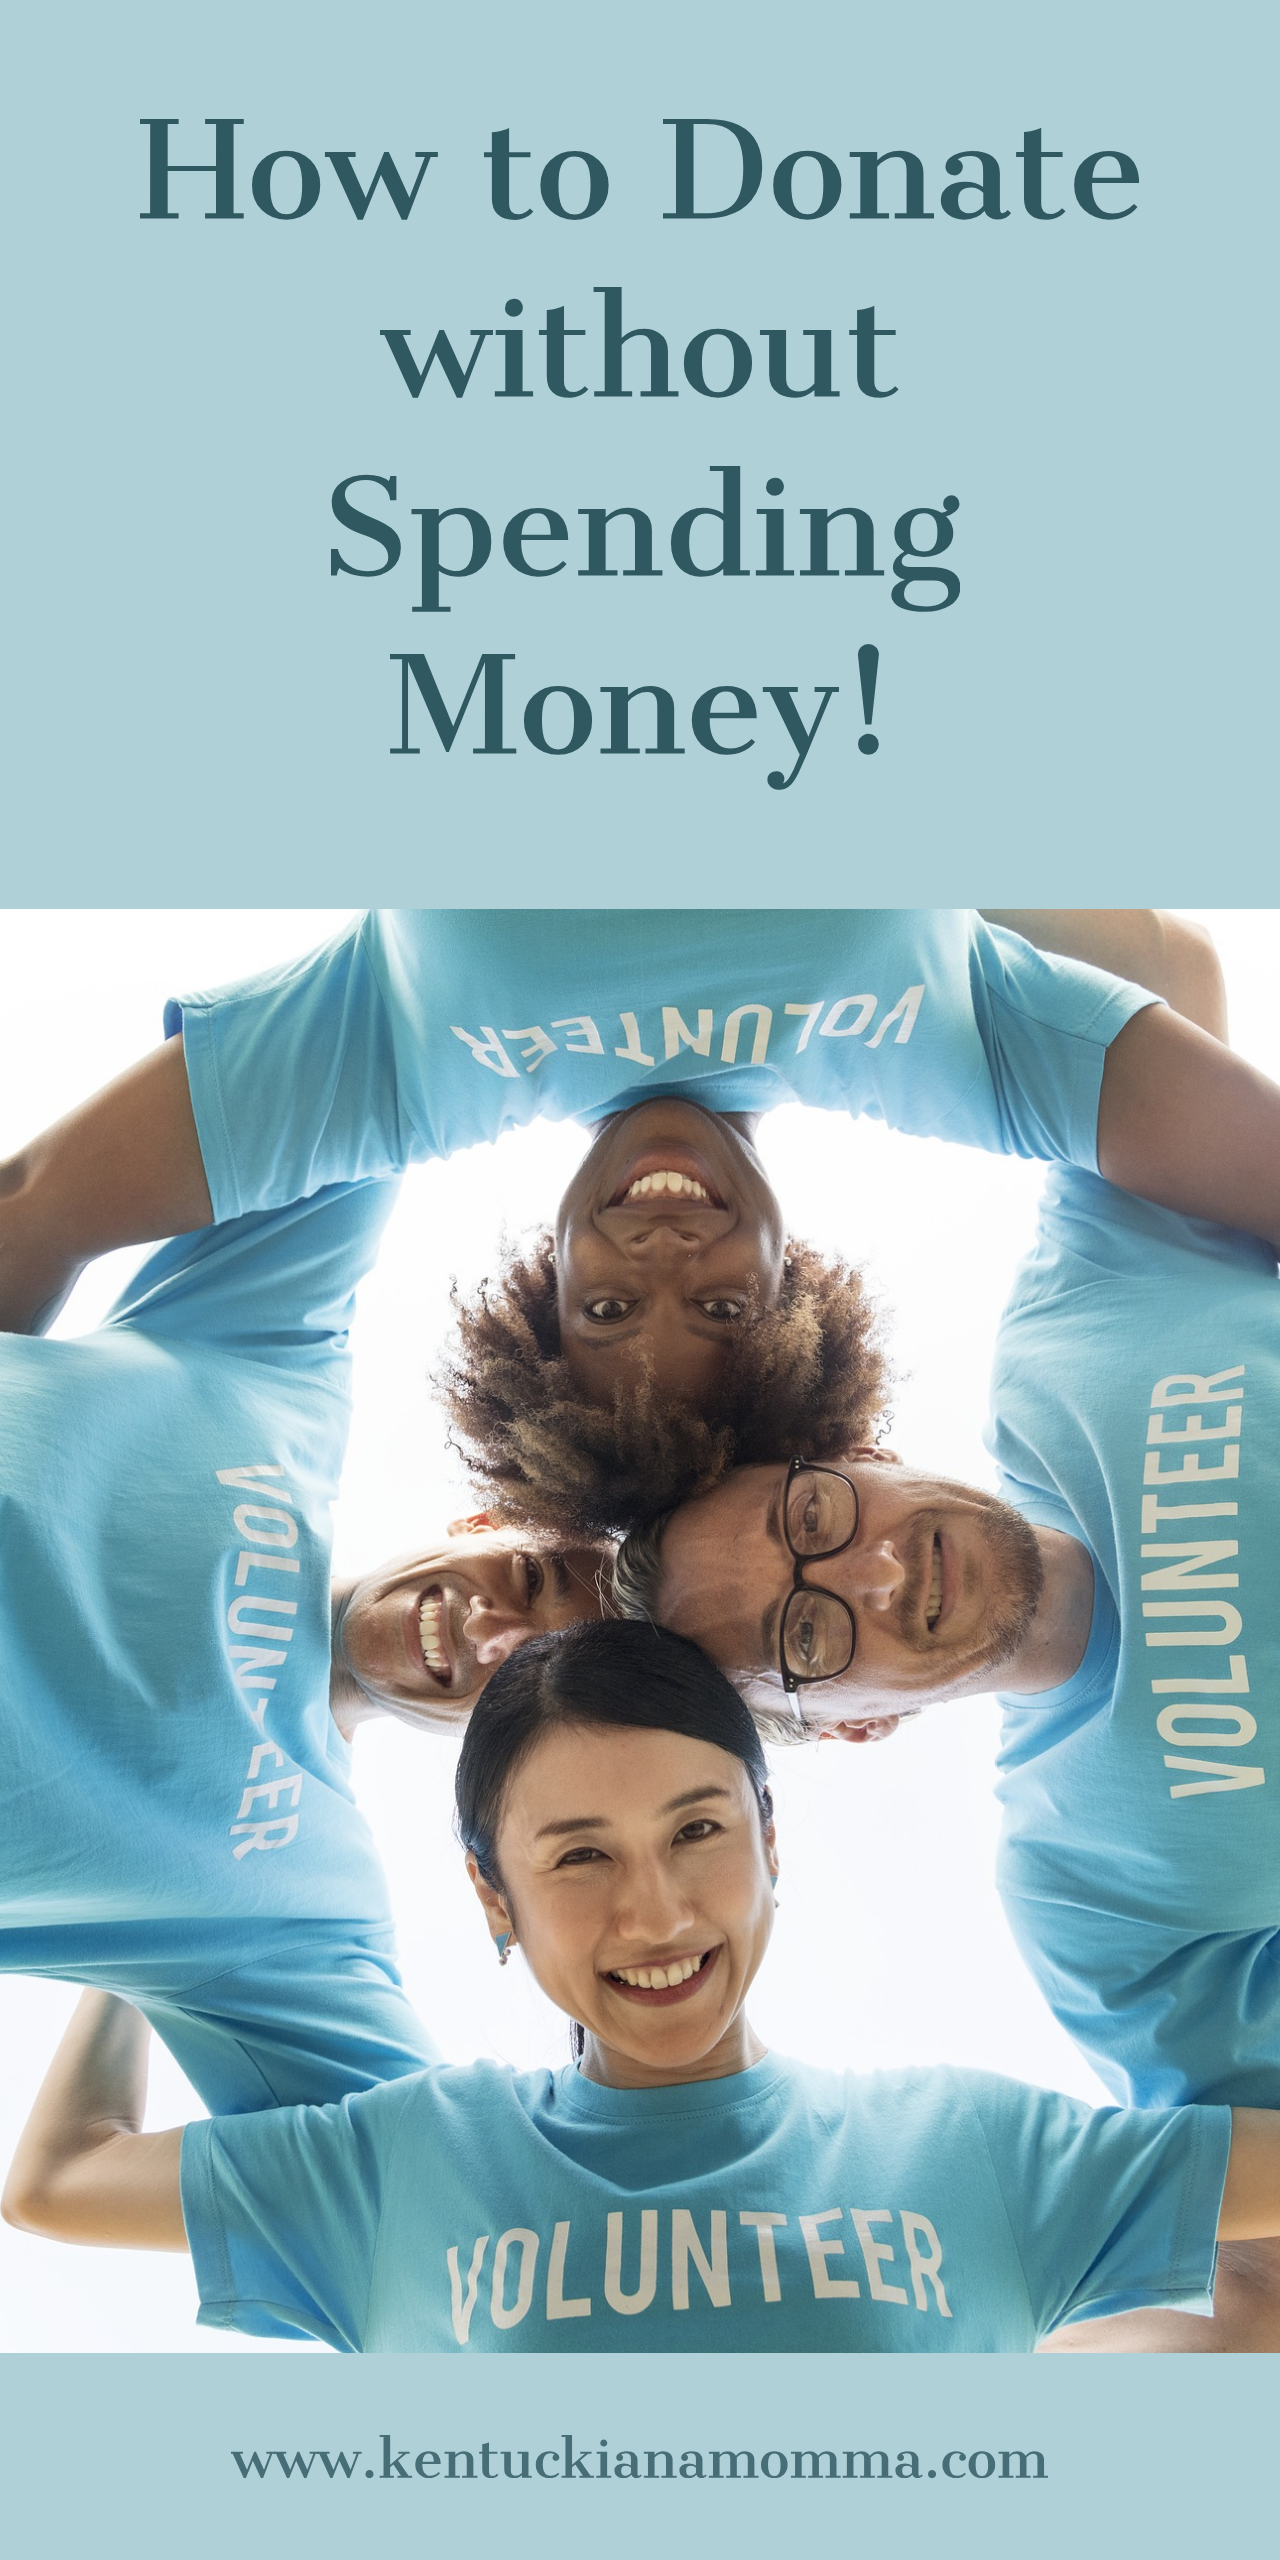 There are so many ways to donate without spending money! Not everyone has the ability to continually donate money to different organizations but check out these other alternatives! #giveback #community #chairty #charitablegiving #donate